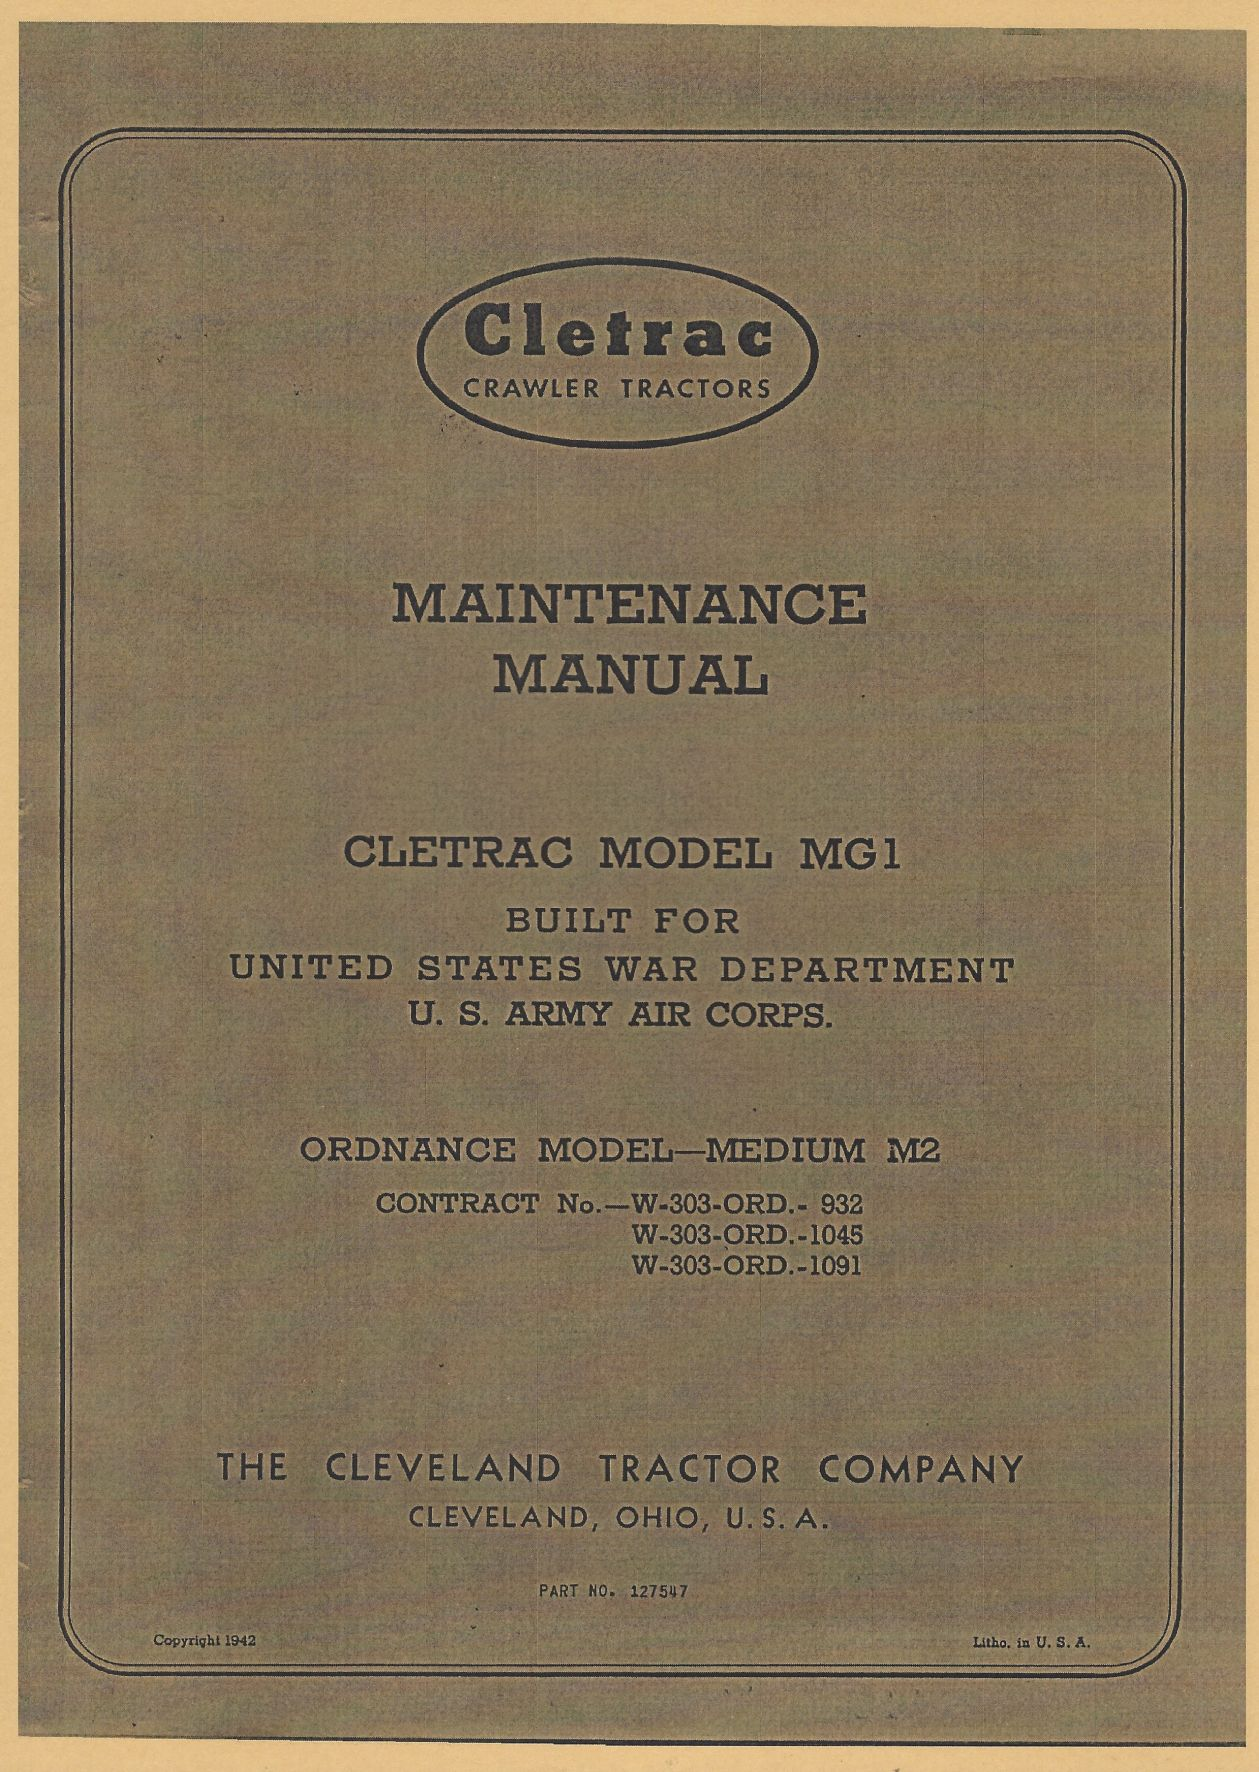 CLETRAC MAINTENANCE MANUAL US